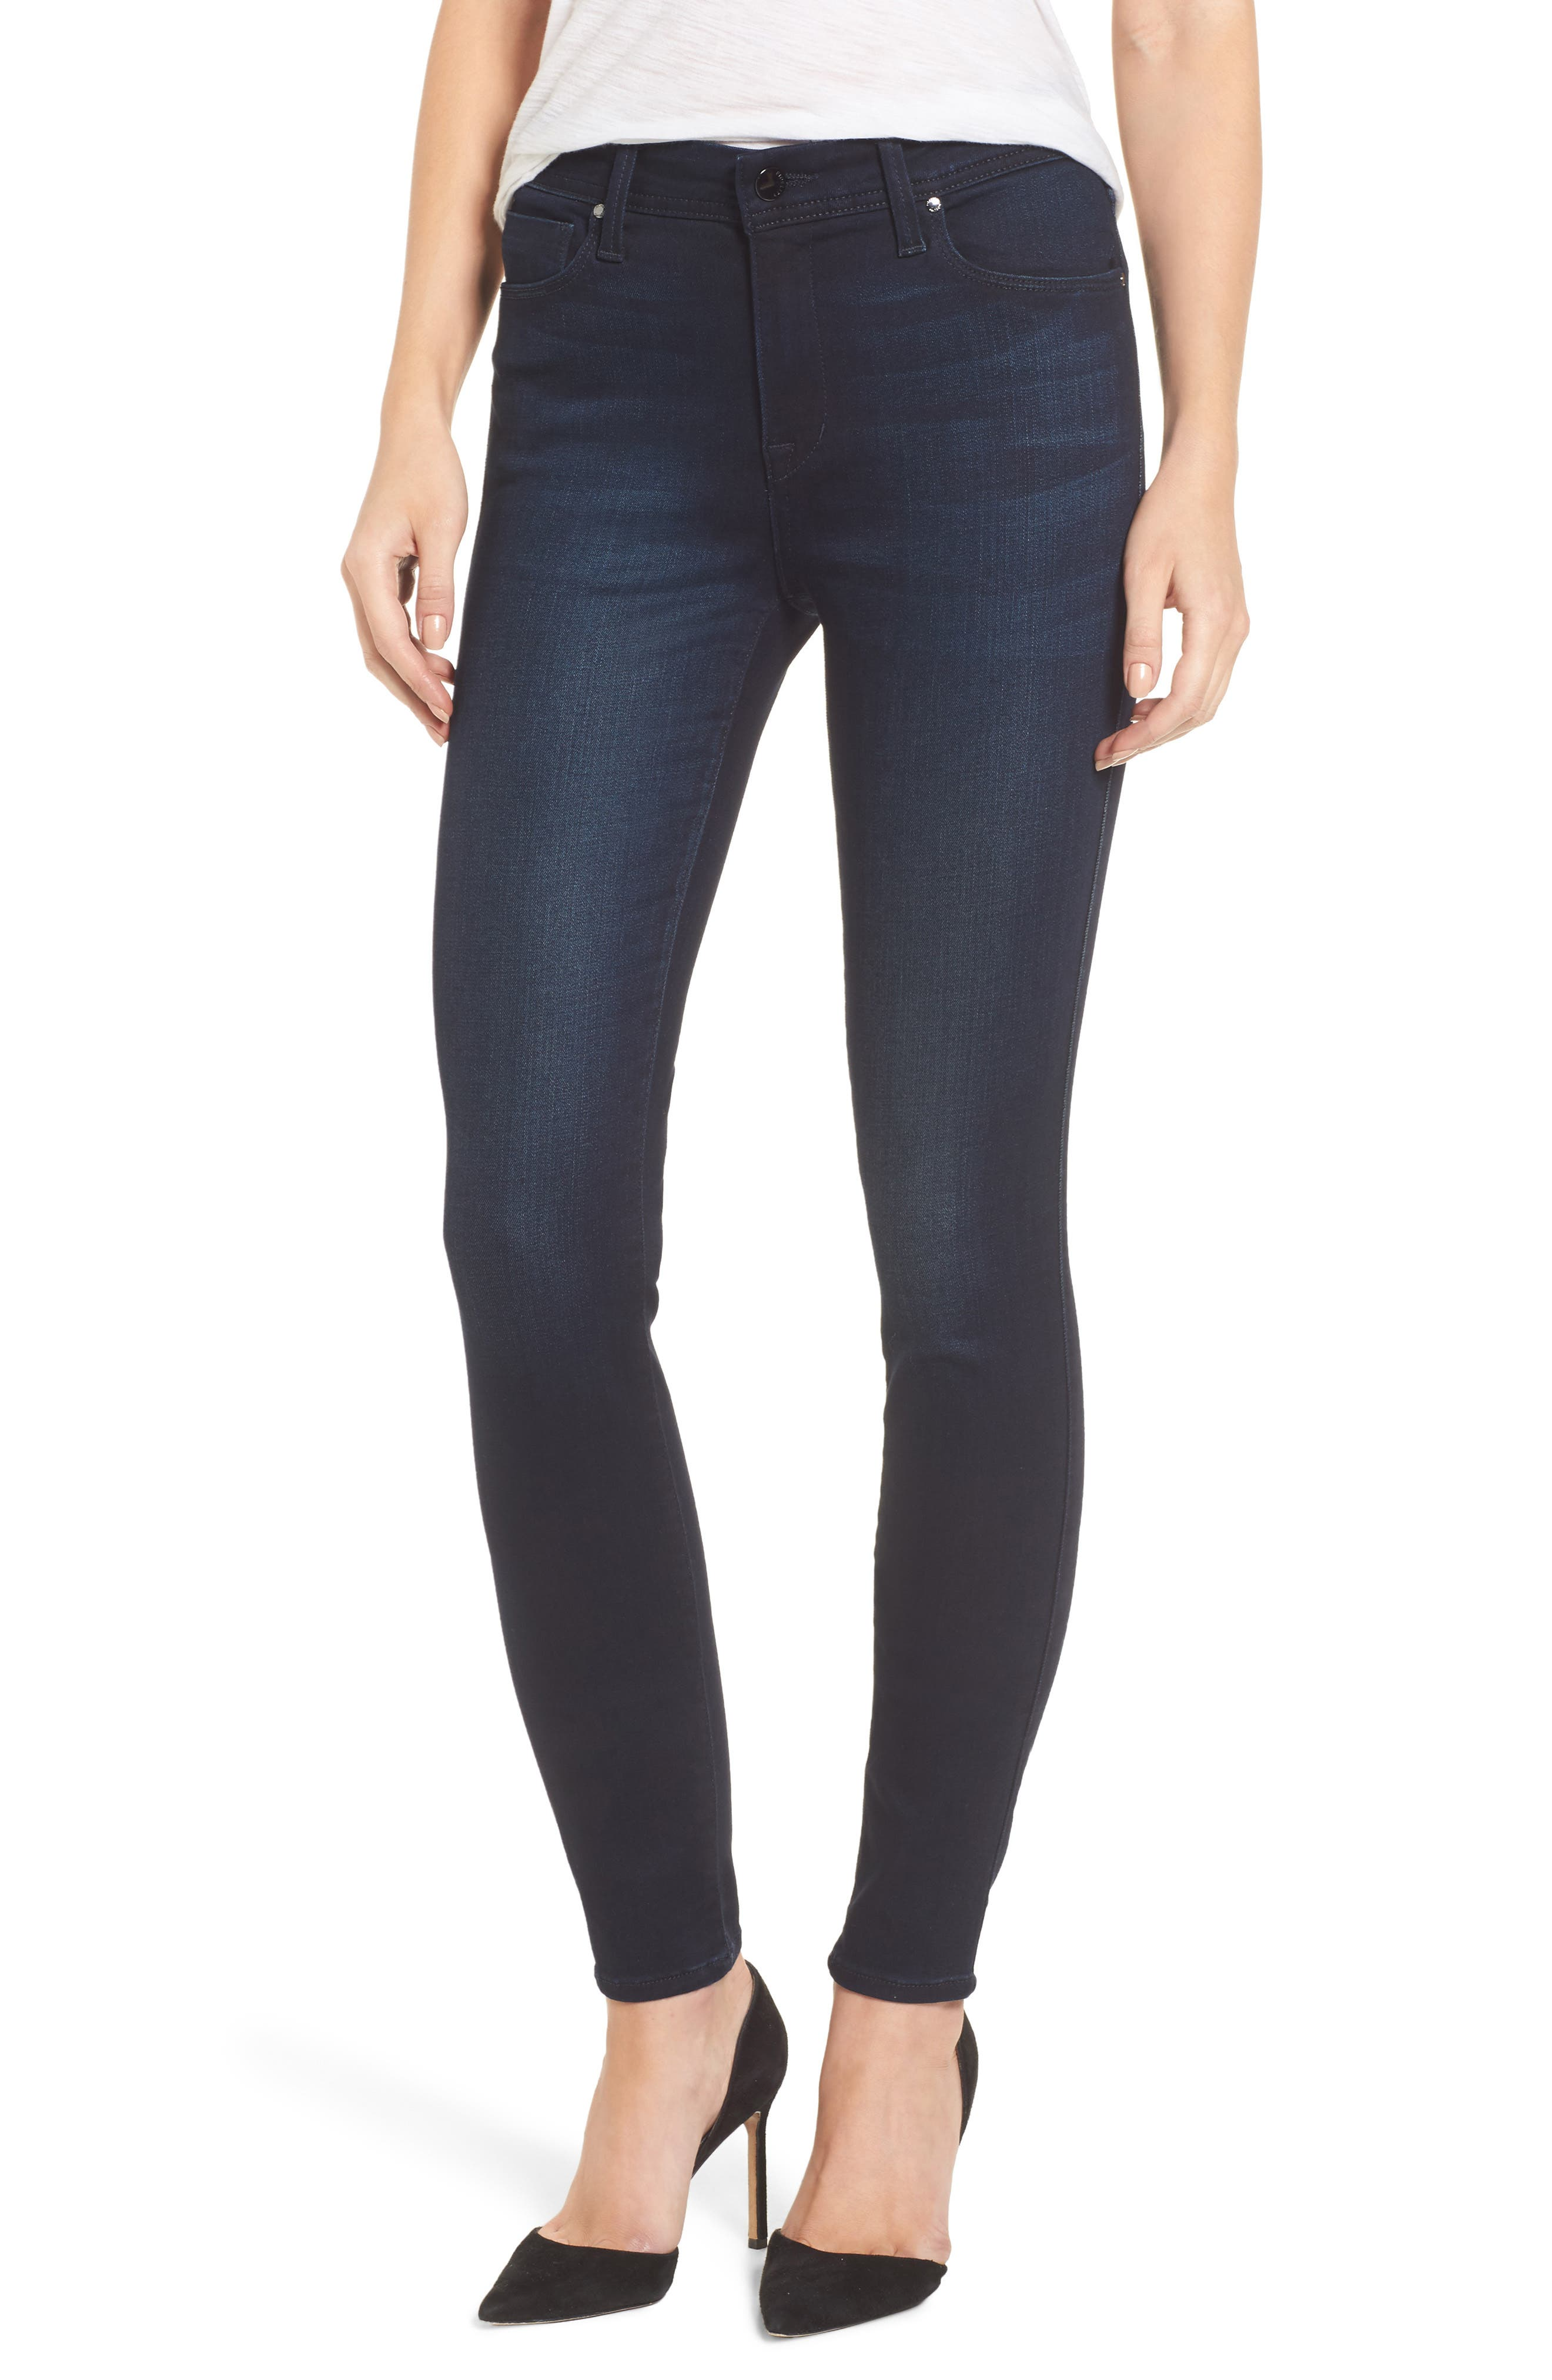 Fidelity Jeans Belvedere Skinny Jeans,                             Main thumbnail 1, color,                             Sapphire